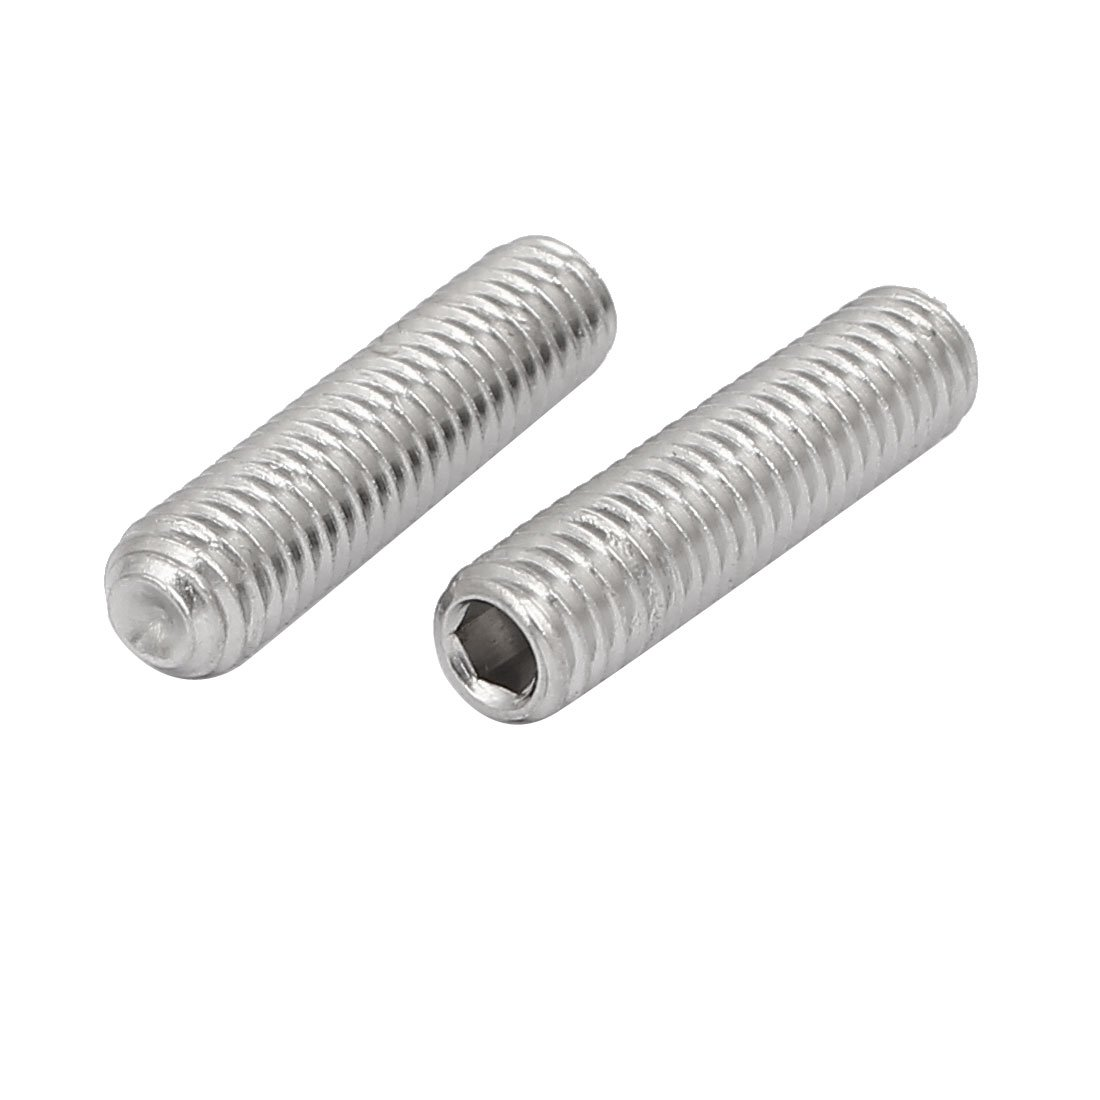 uxcell M6x25mm 316 Stainless Steel Hex Socket Cup Point Grub Set Screws 10pcs a16112800ux0453